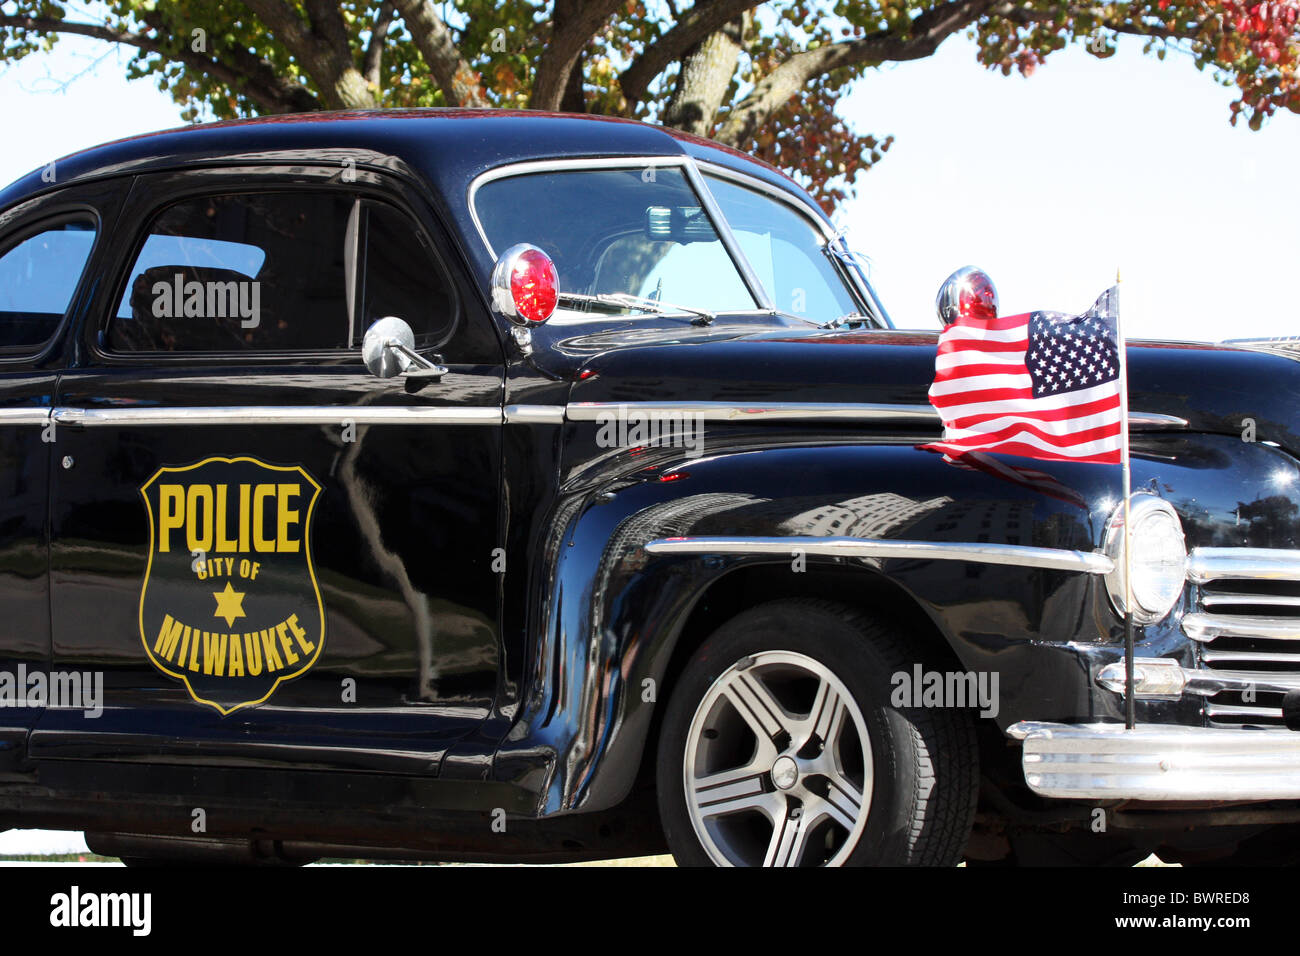 A vintage Milwaukee Police car in the Veterans parade in Milwaukee ...